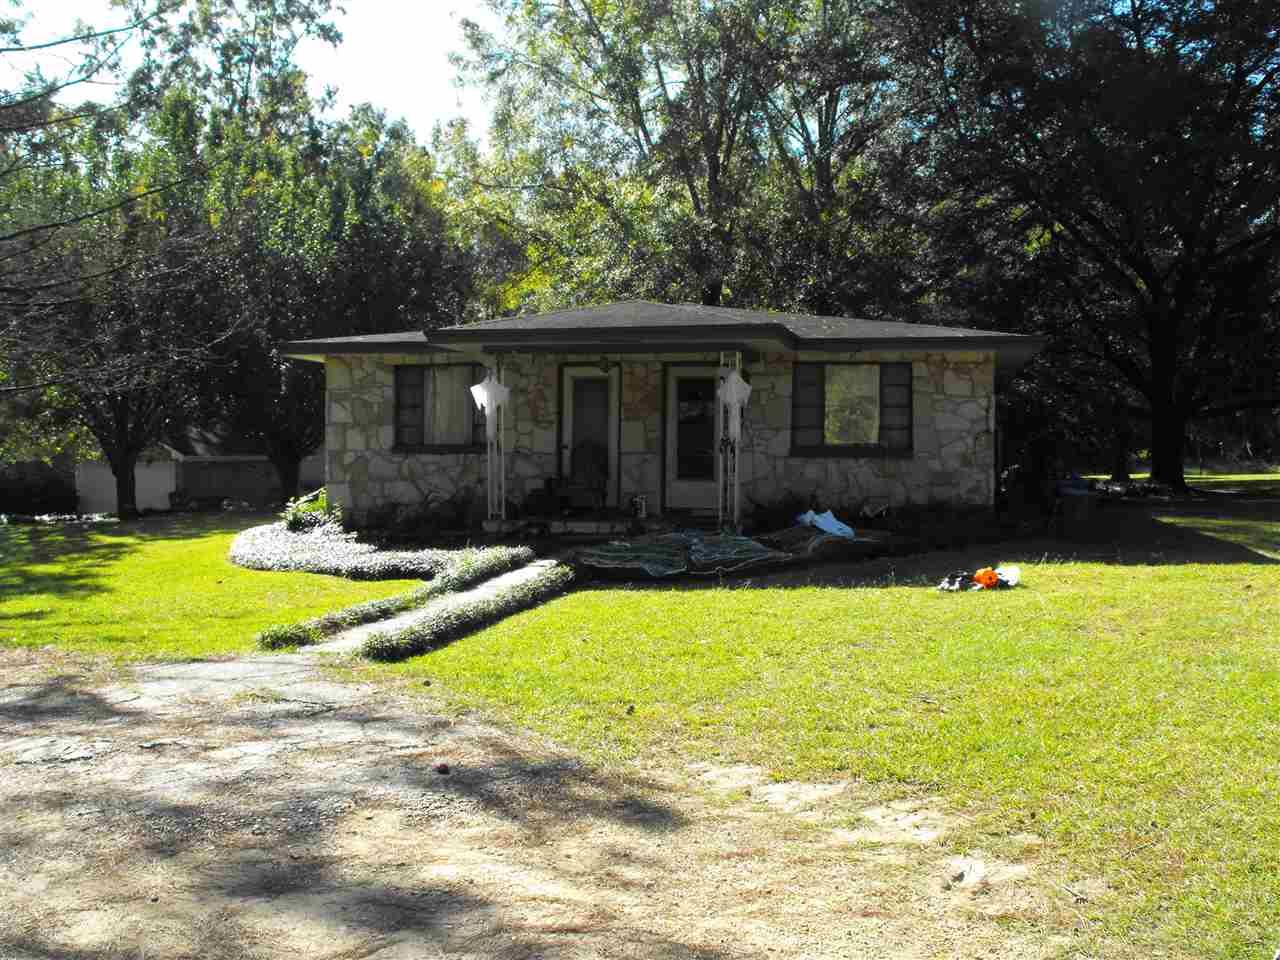 729 N CHURCH ST, Florence, MS 39073 - MLS#: 336232